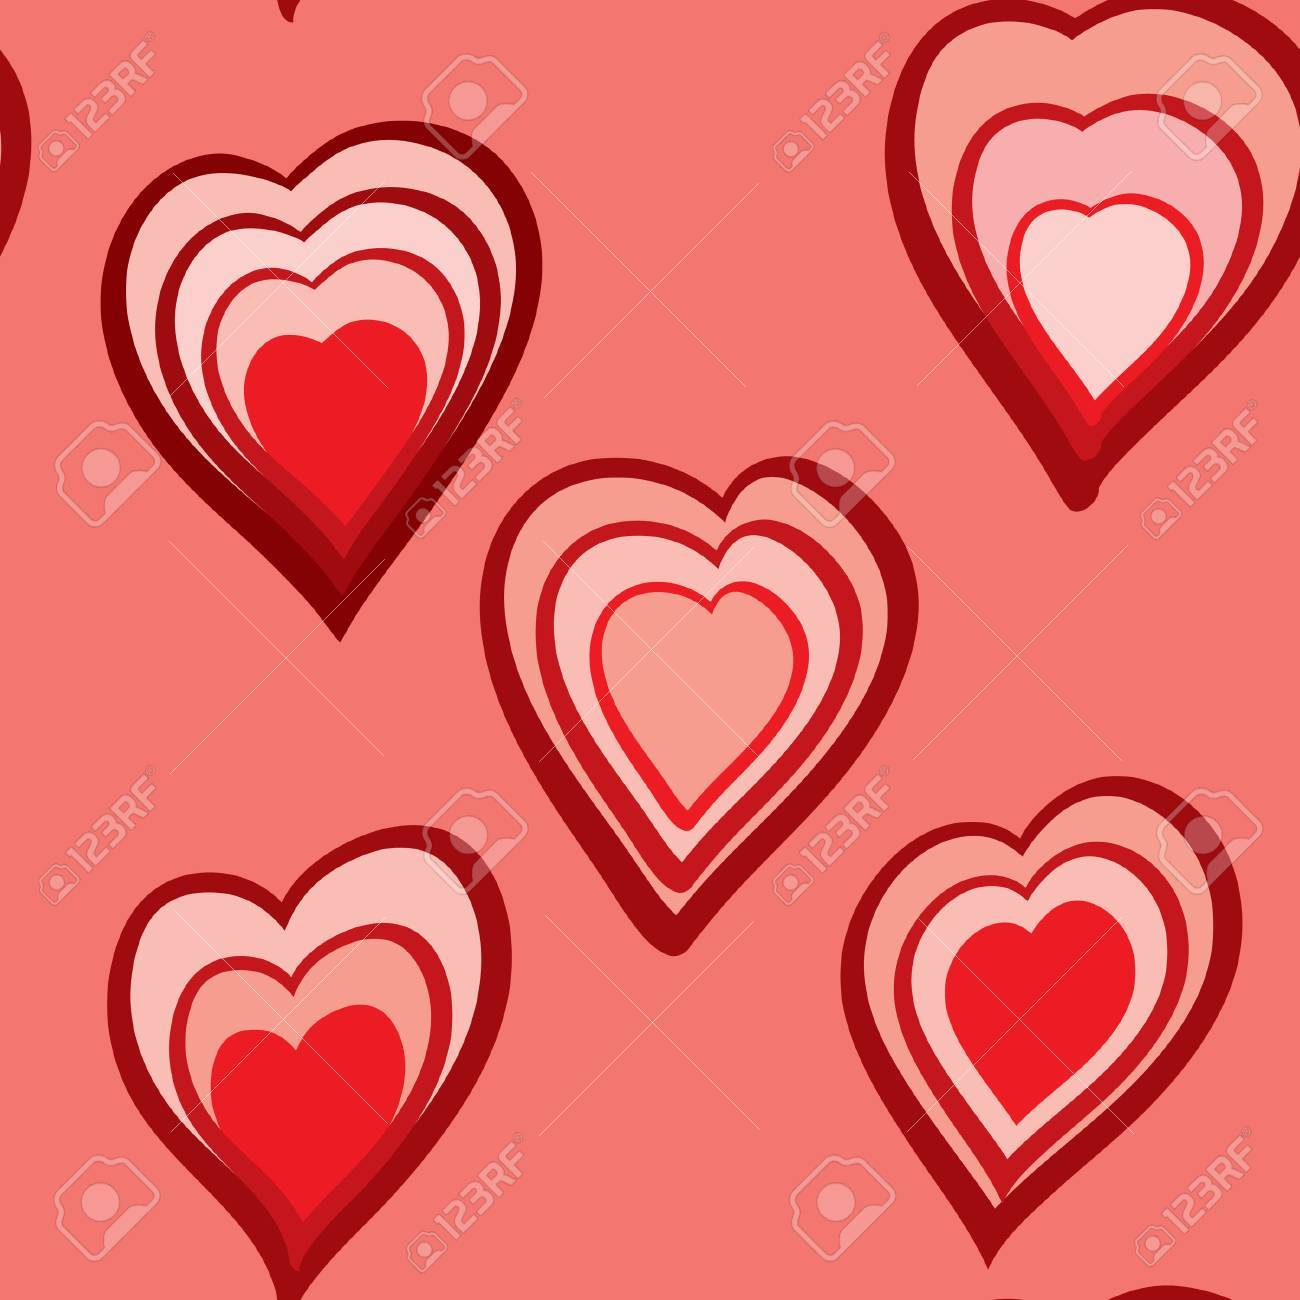 Valentine's day abstract seamless background with red hearts.  illustration. Stock Vector - 6270632